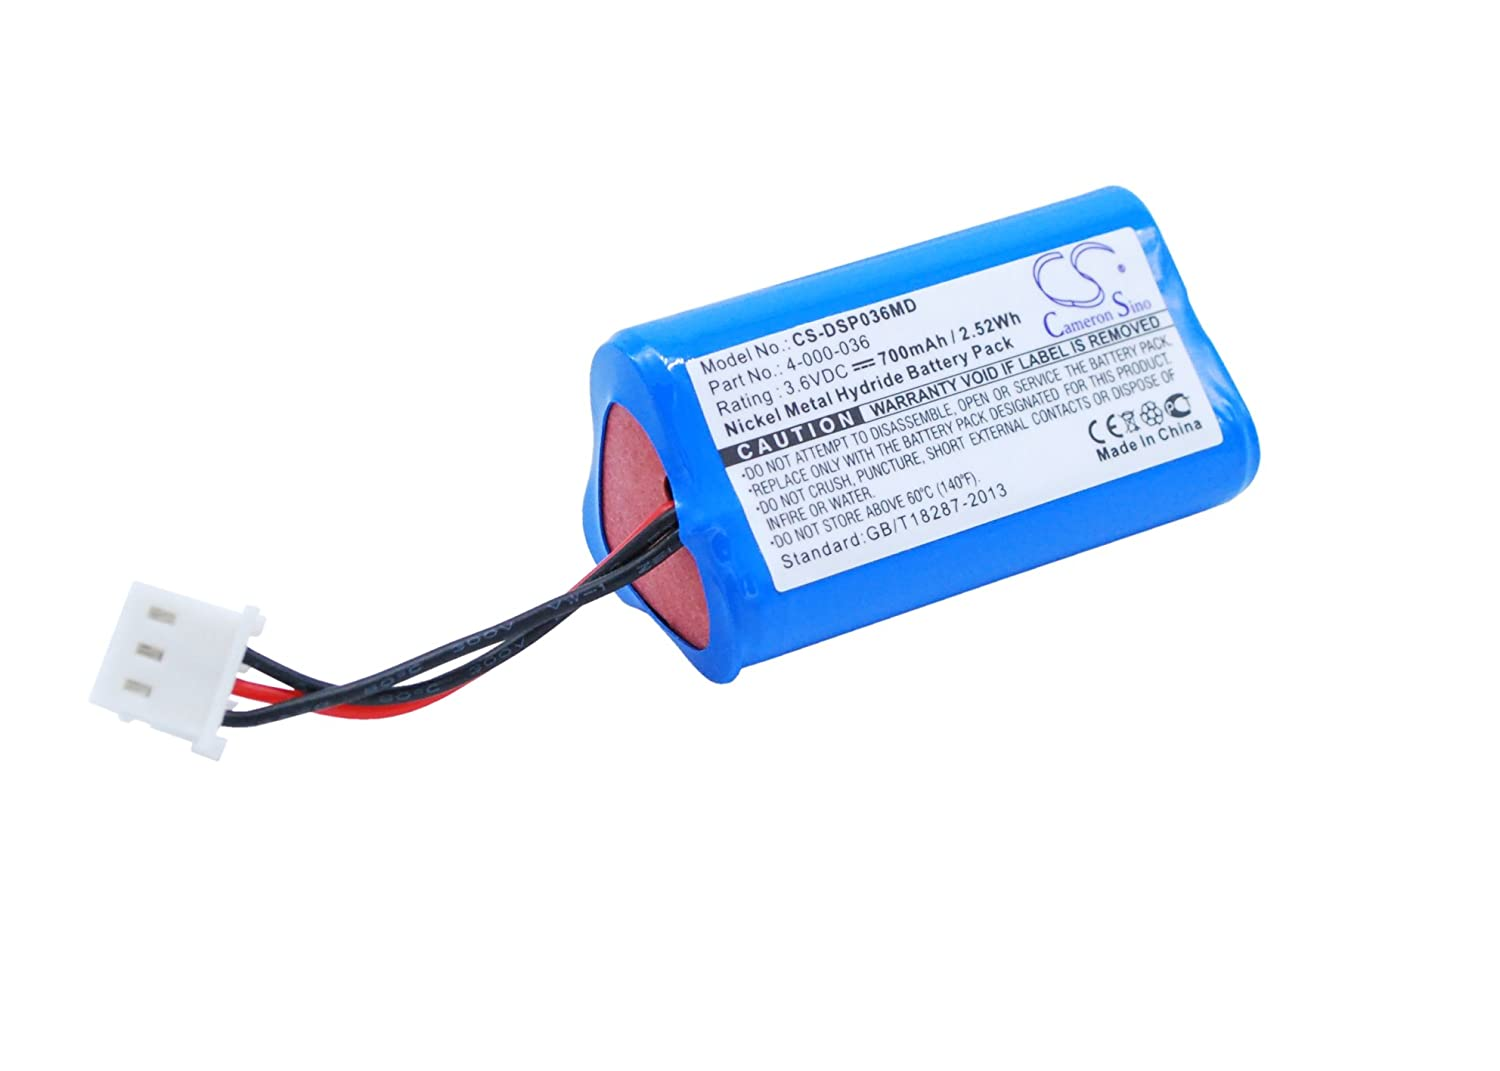 Drummond Finally resale start Scientific 4-000-036 Replacement Battery Excellence Ni-MH for Port